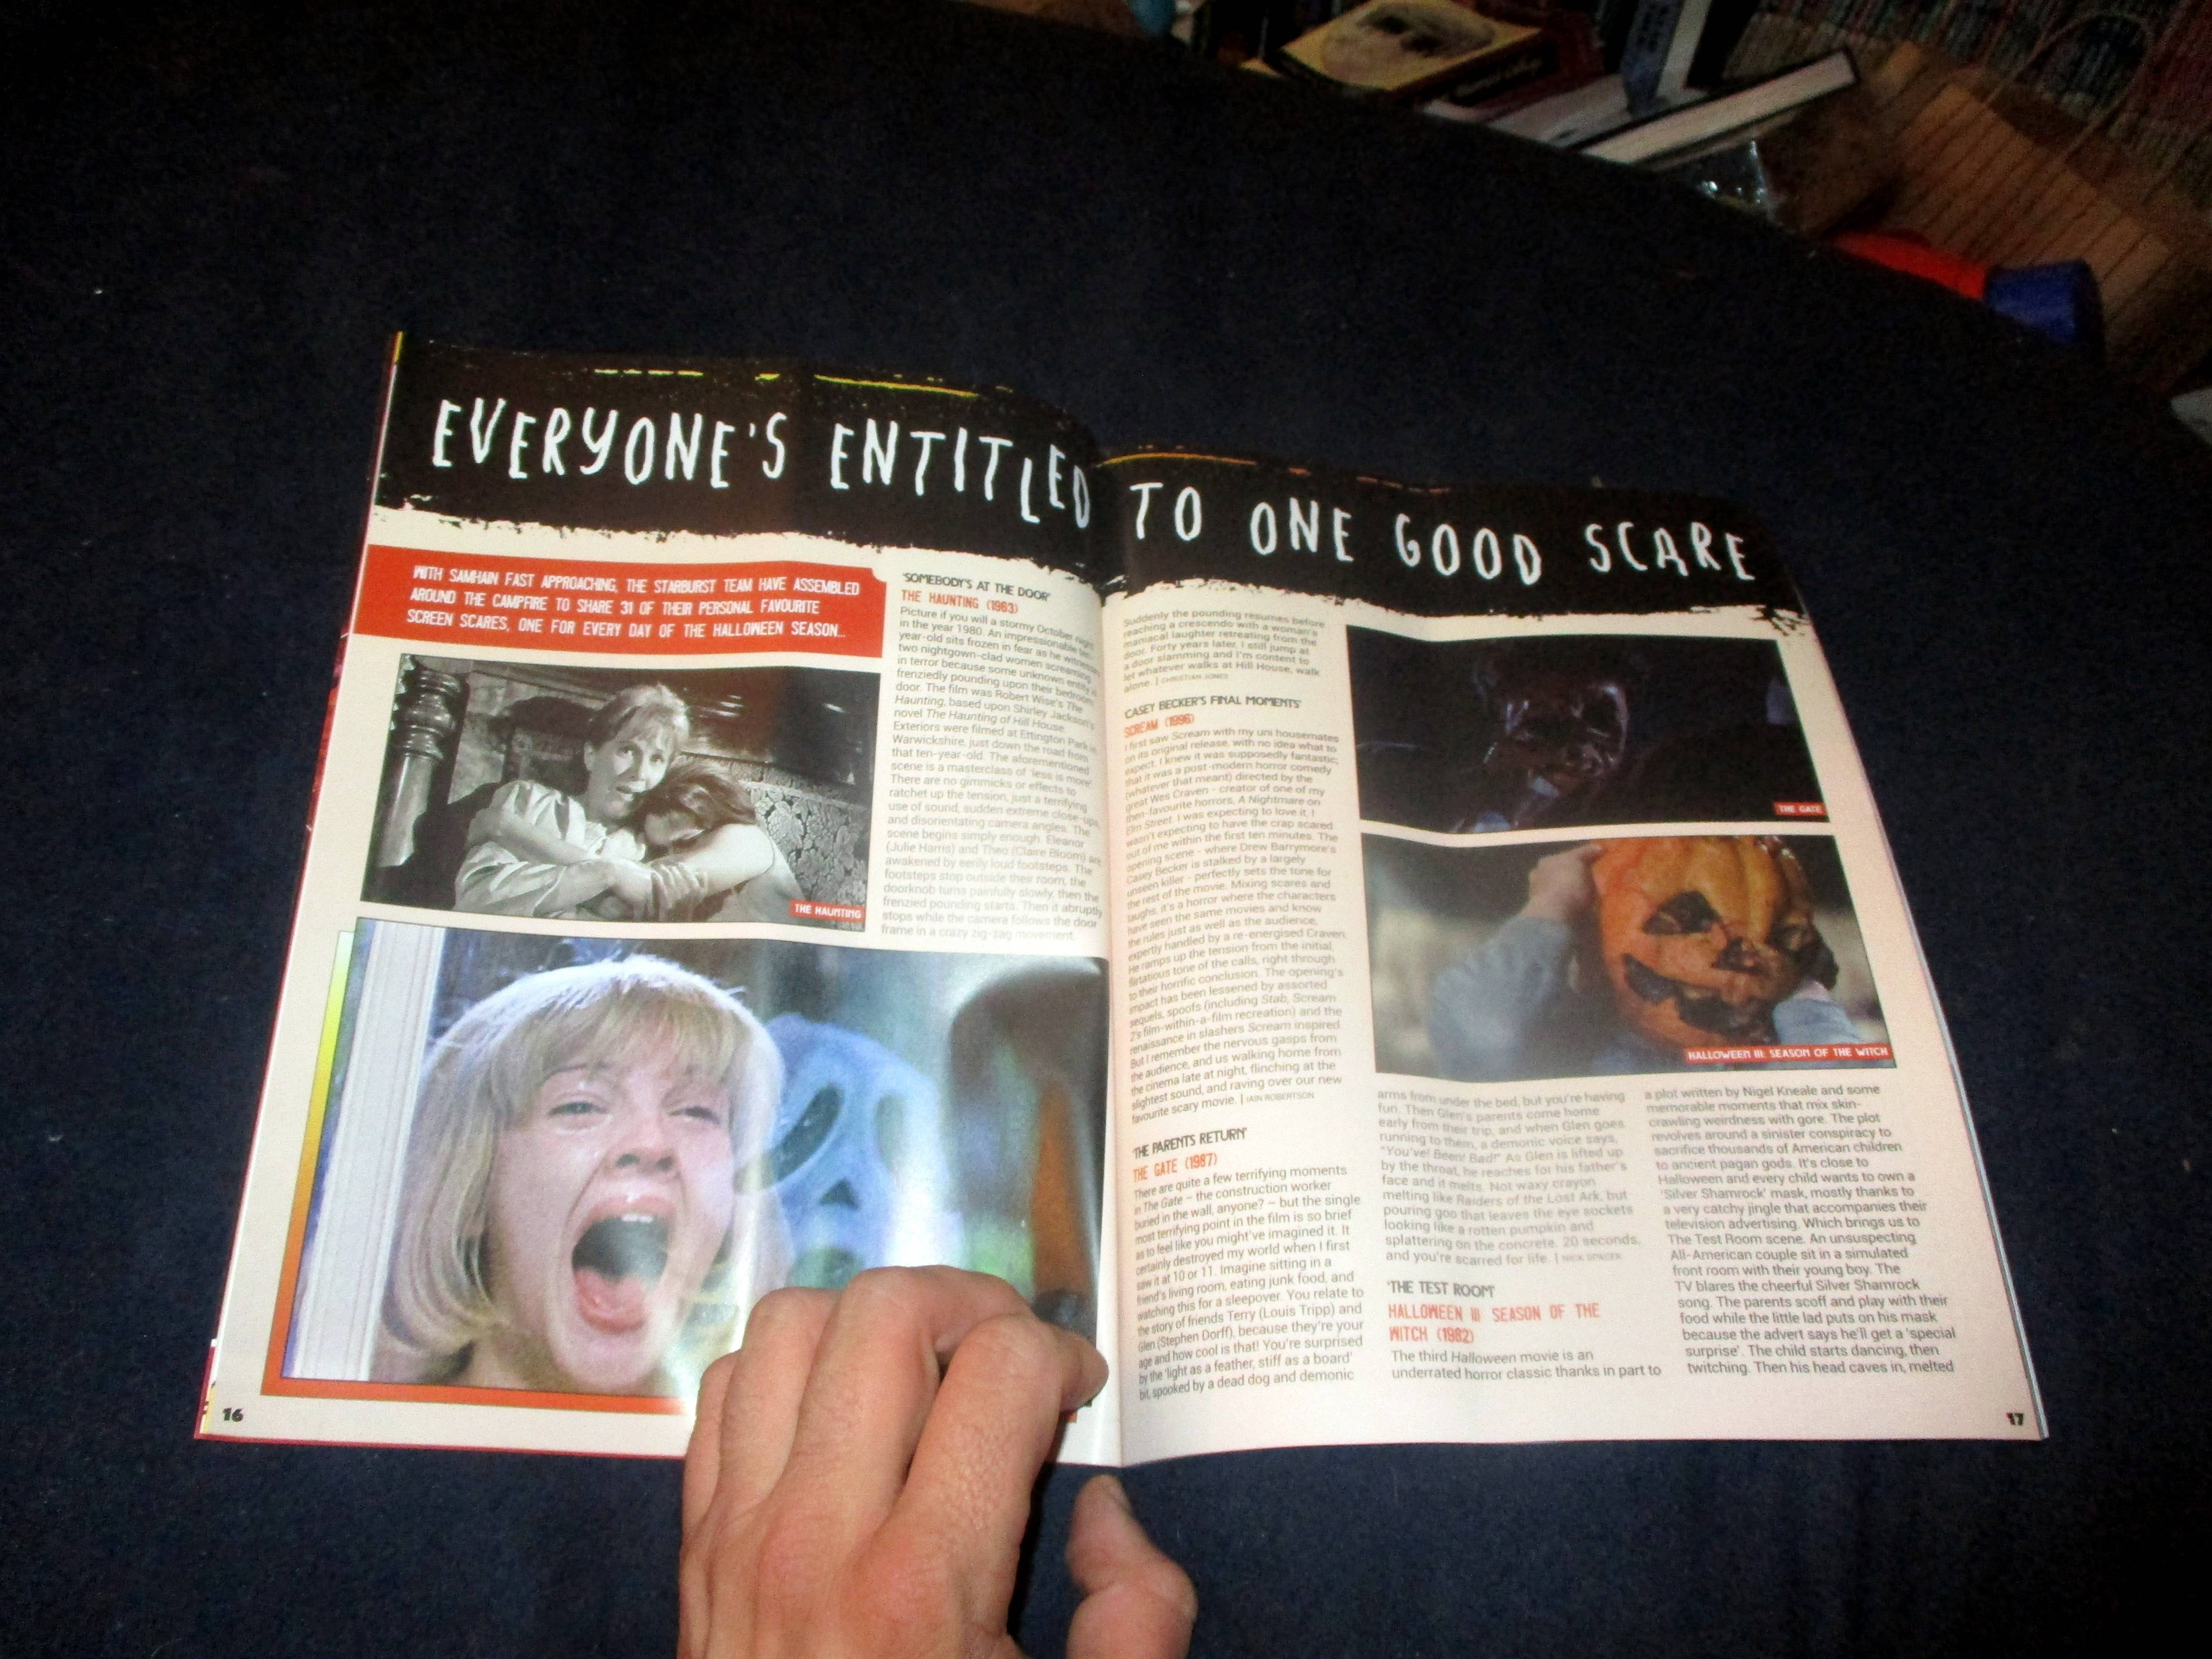 Opening Page Spread of Everyone's Entitled to One Good Scare in Starburst Magazine #474: Everyone's Entitled to One Good Scare Collectors' Edition at The Wombatorium 2.0: A Capital Idea